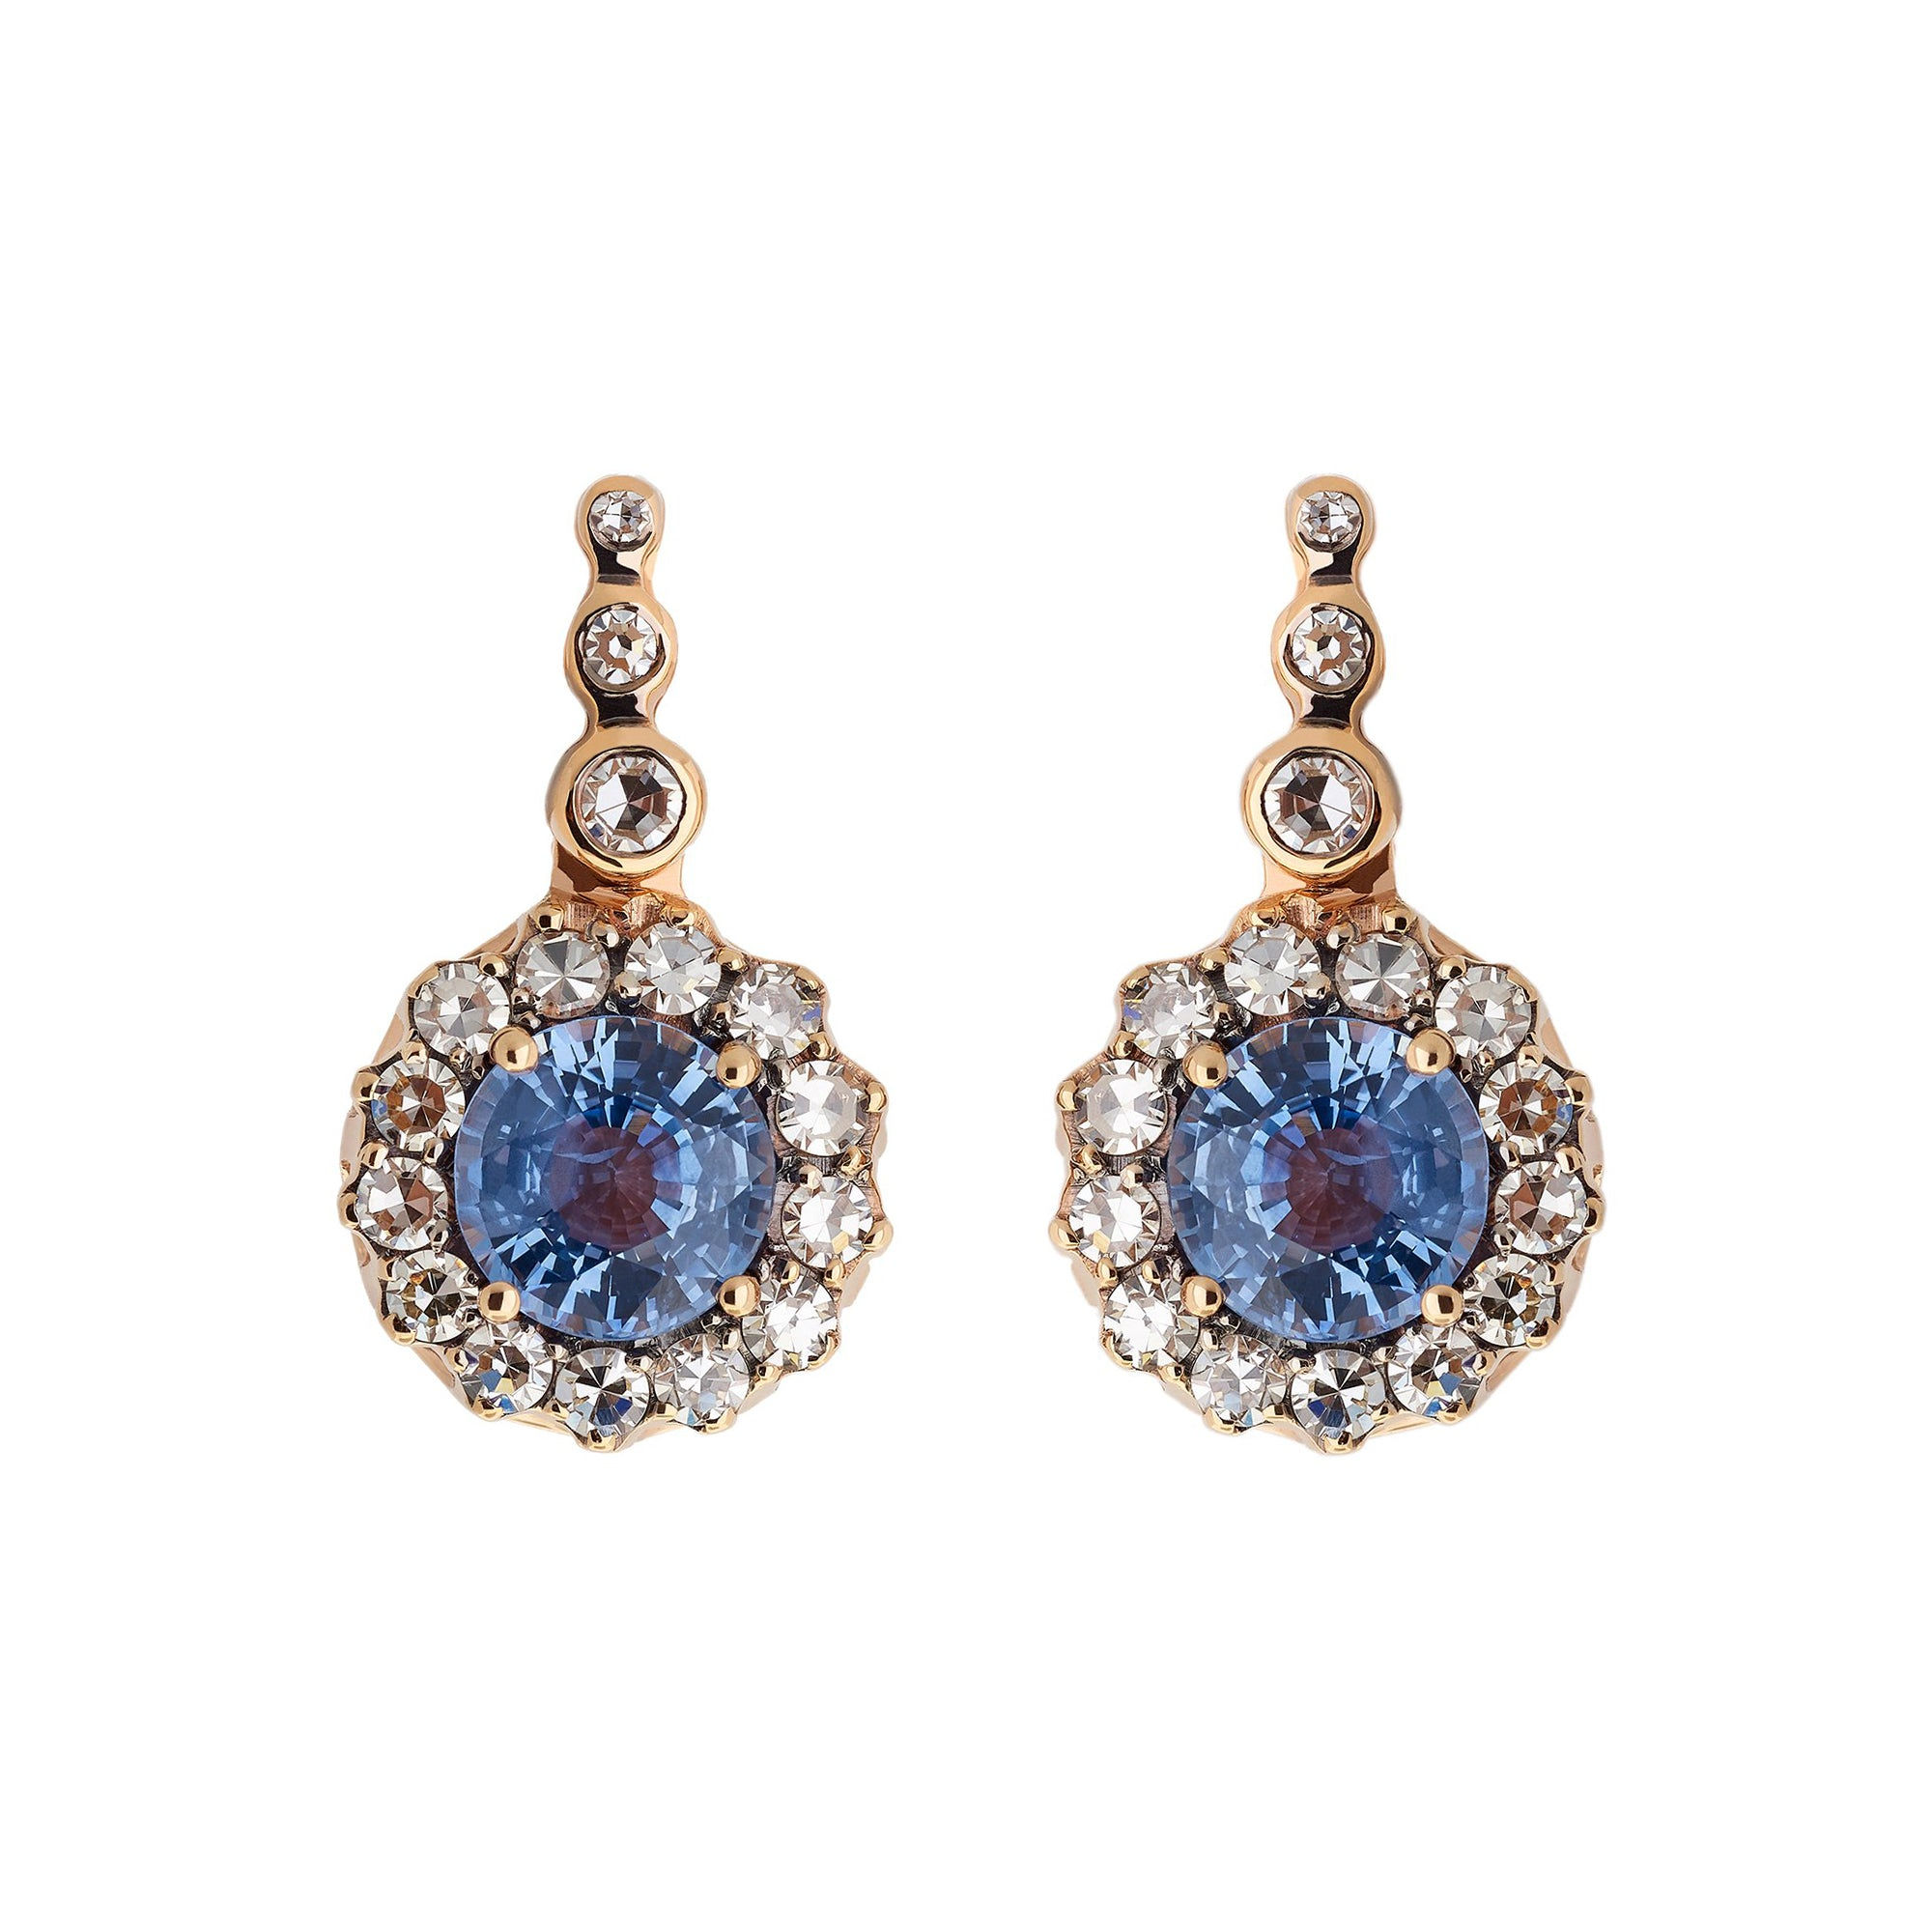 Blue Sapphire Earrings by Selim Mouzannar for Broken English Jewelry